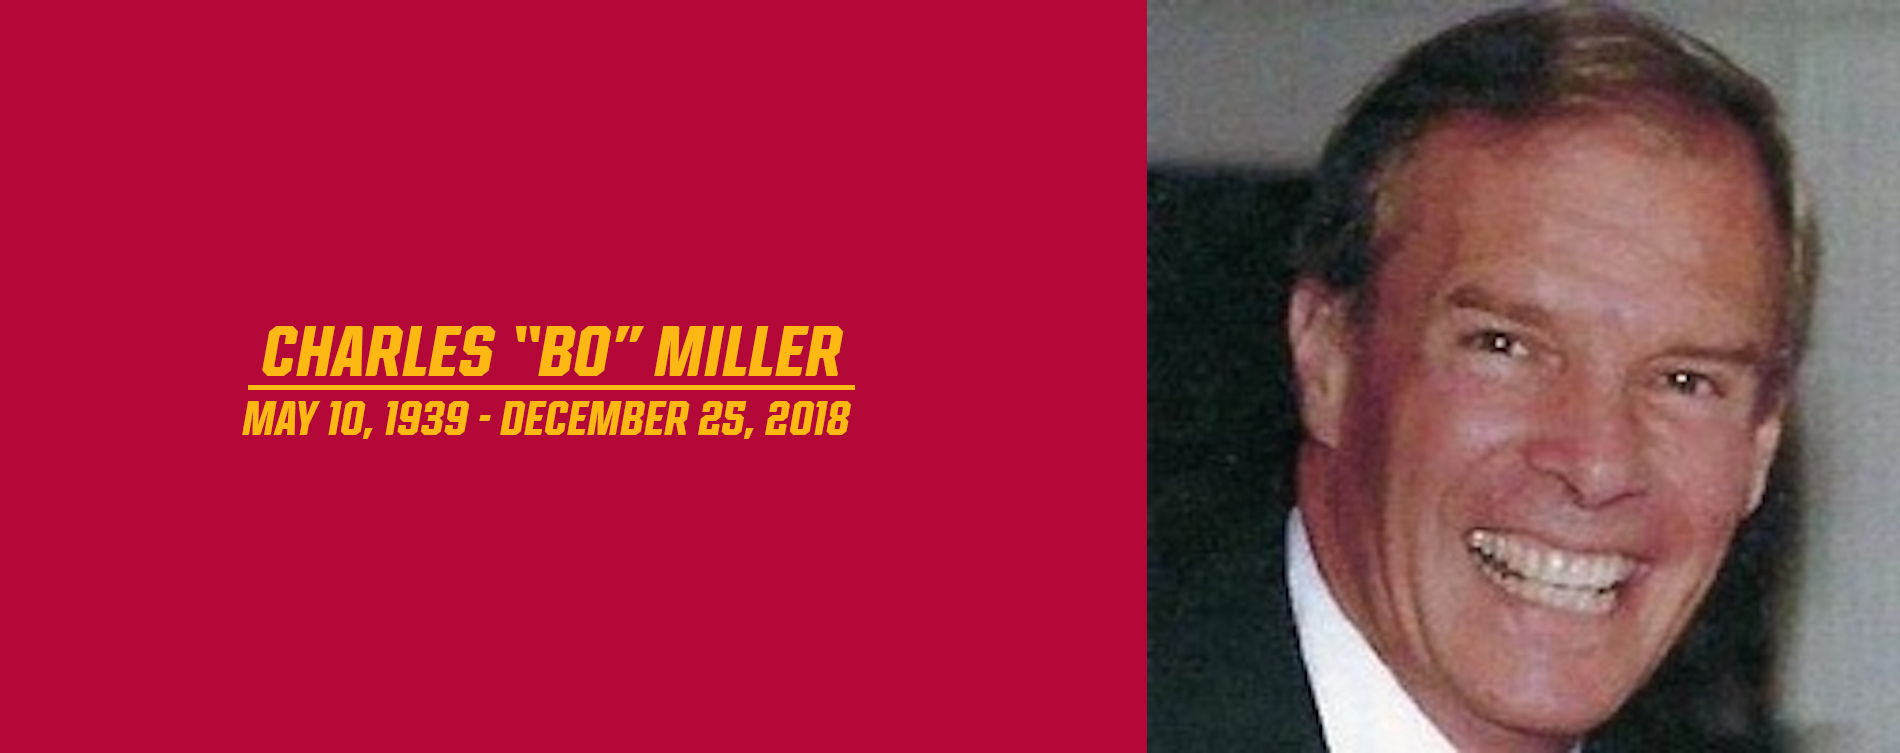 "Austin College Mourns the Passing of Charles ""Bo"" Miller"